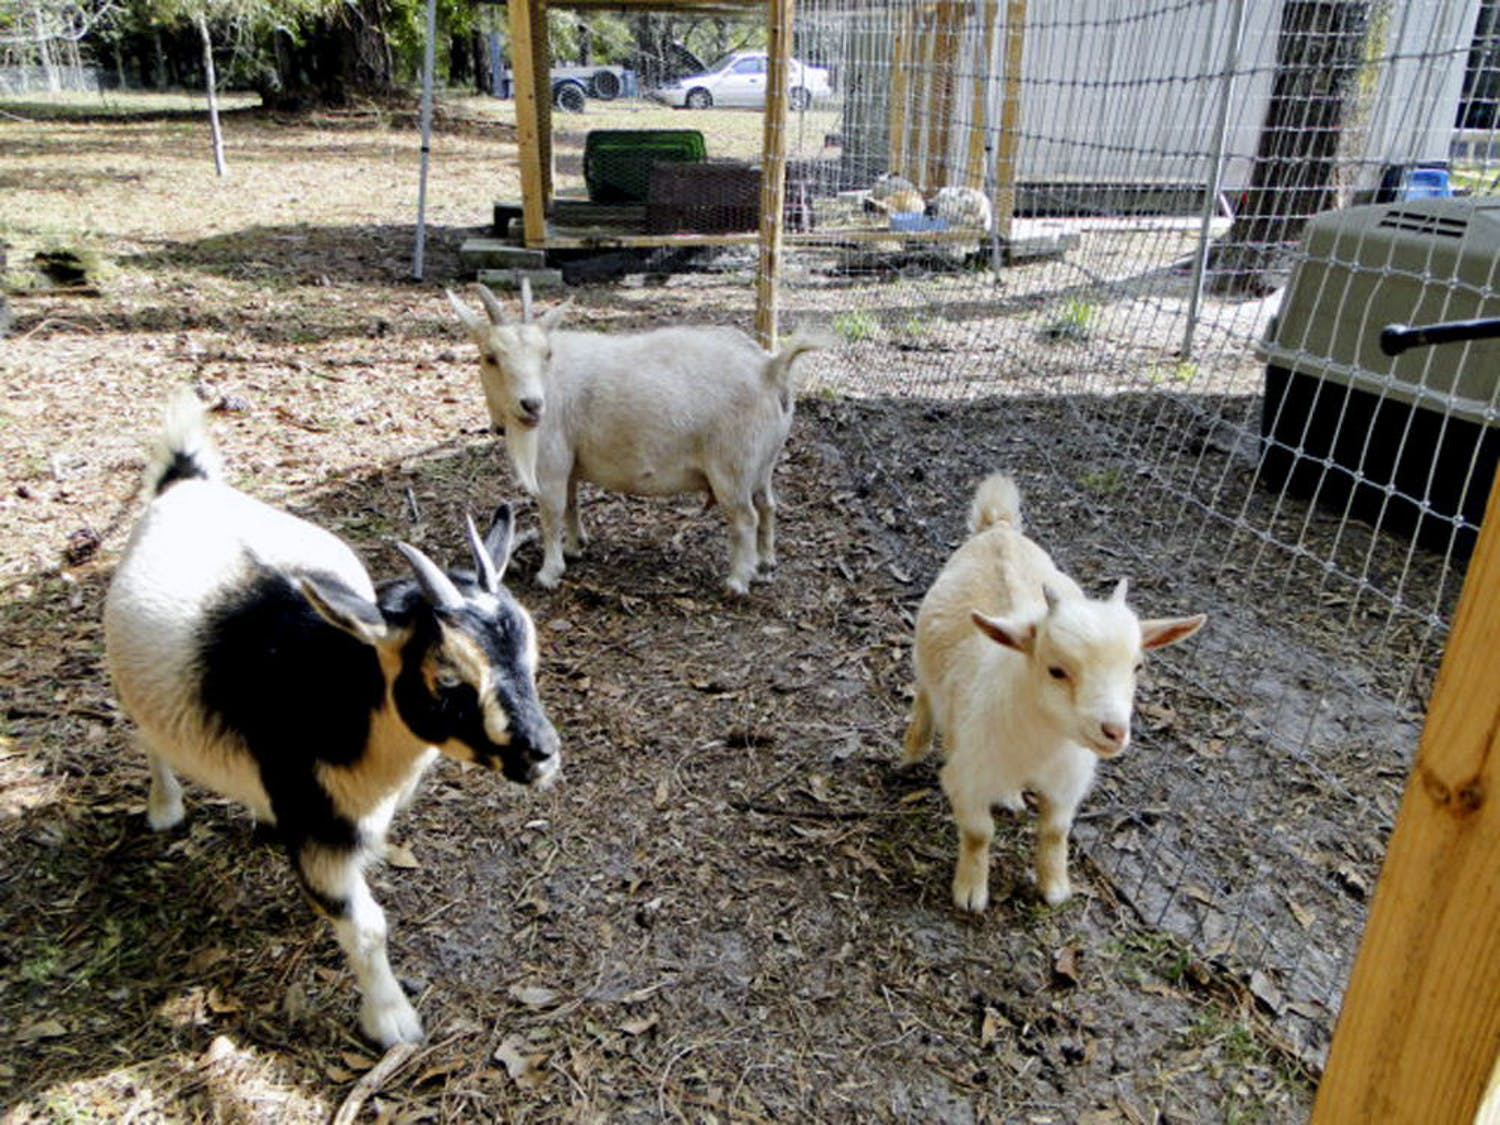 From right: Salt the goat enjoys the day alongside Hobbit, his mother, and Mittens, his half-sibling.